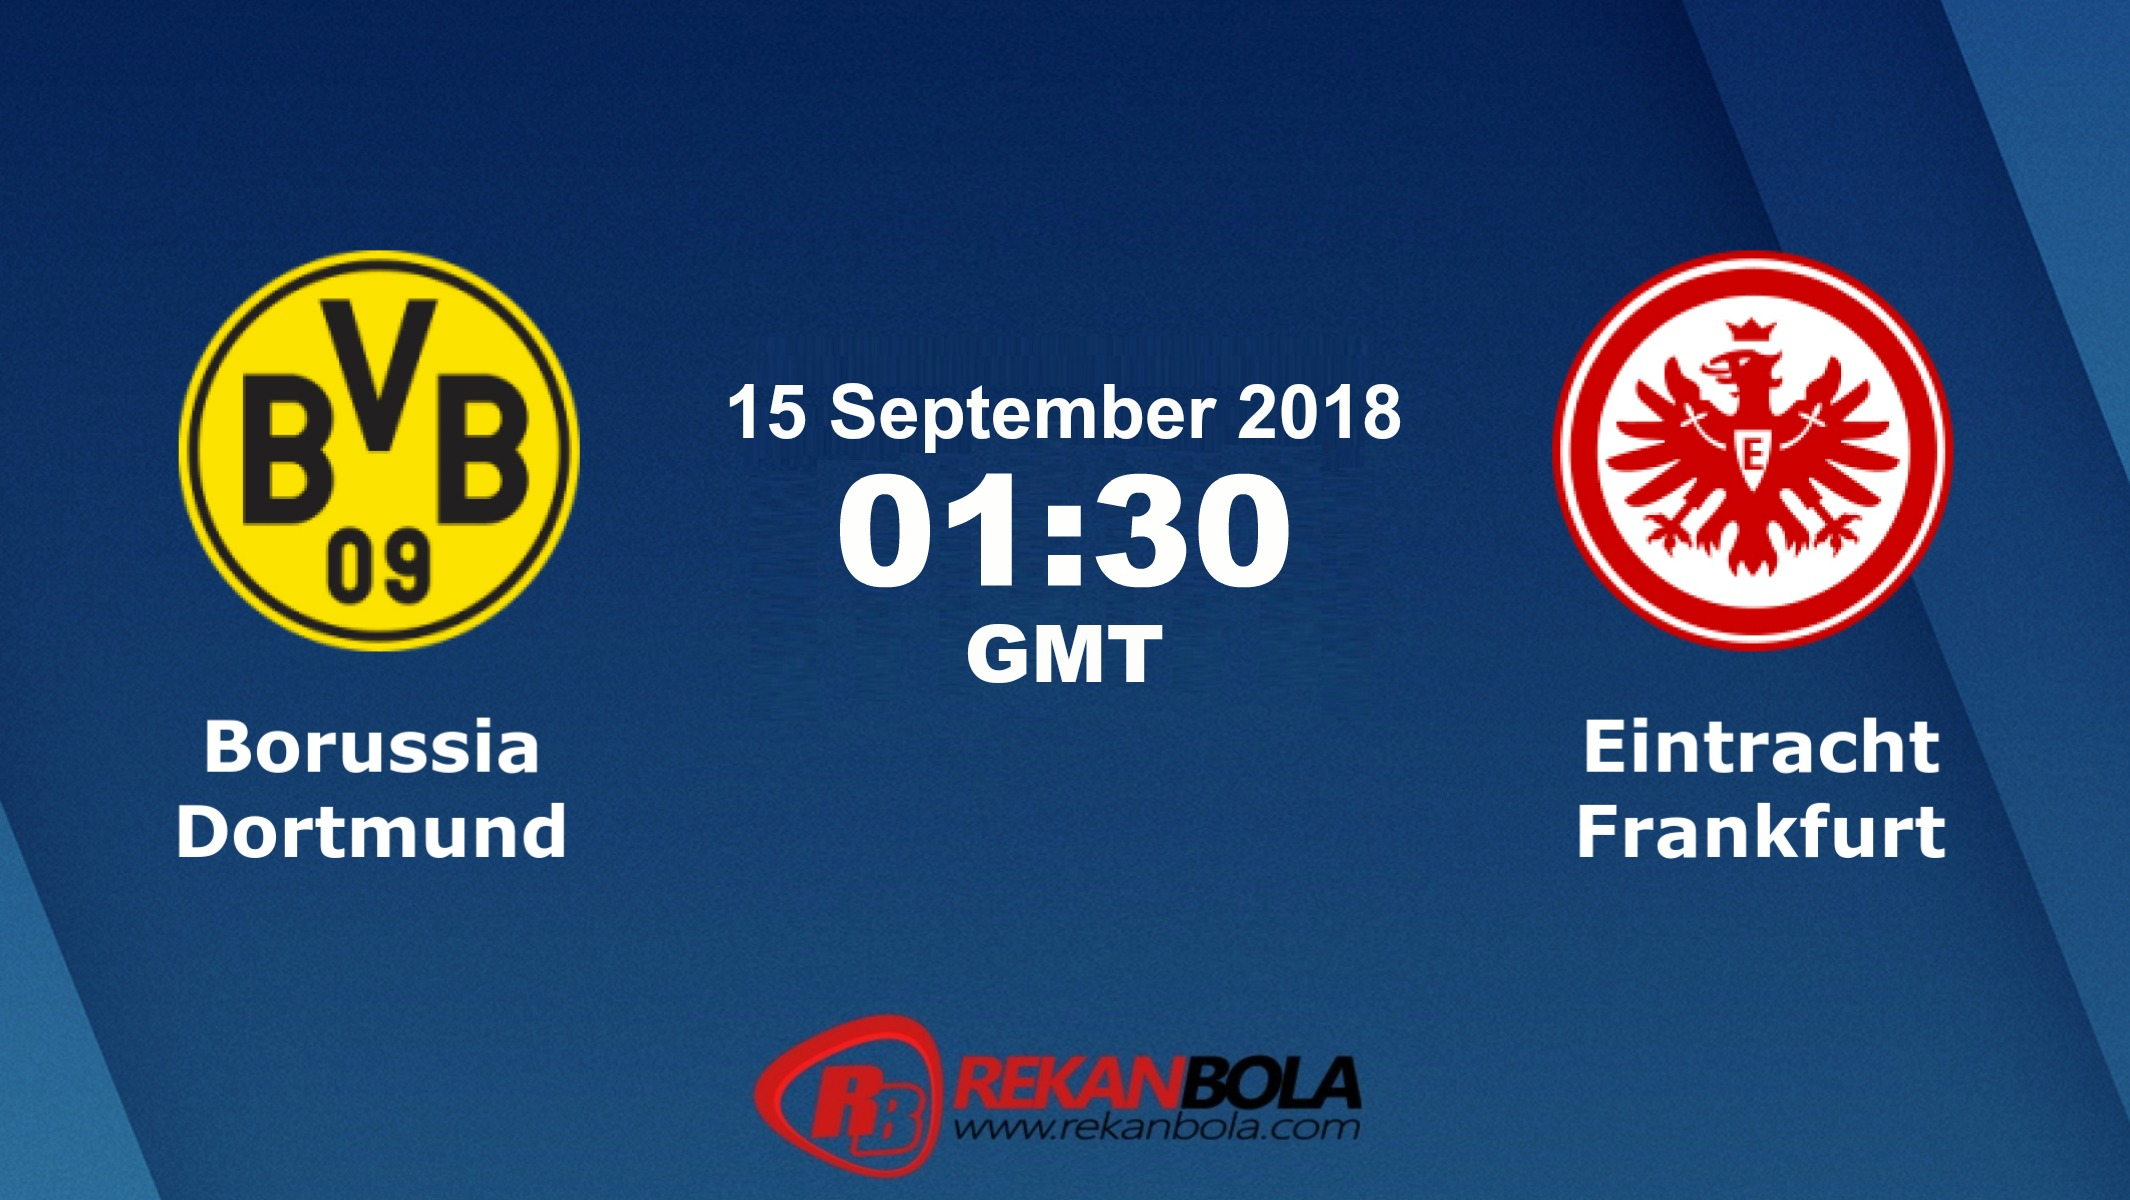 Nonton Siaran Live Streaming Dortmund Vs Frankfurt 15 September 2018